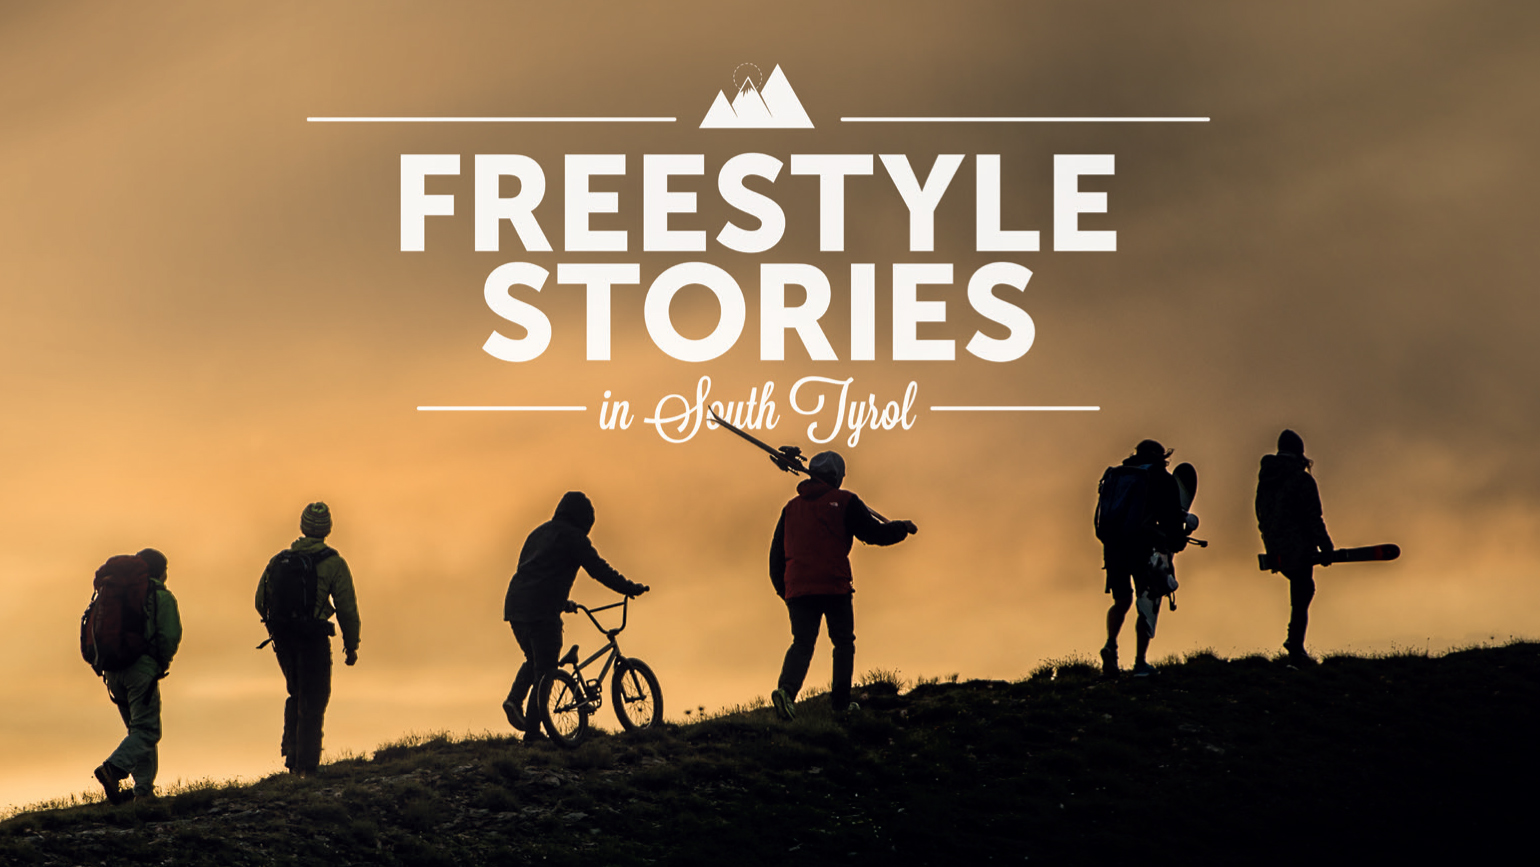 Video: «Freestyle Stories in South Tyrol»